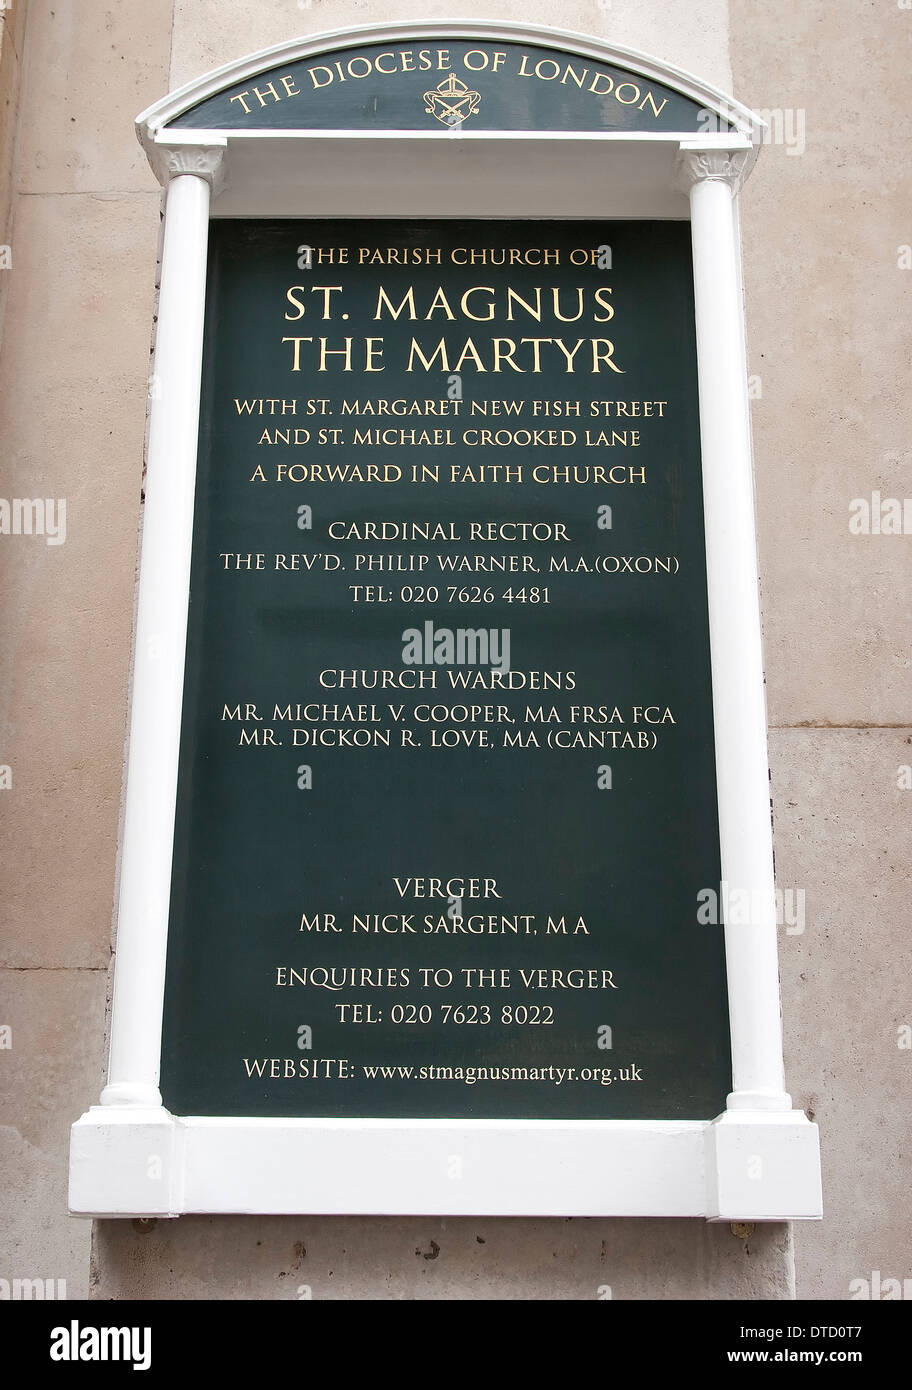 Information plaque for St Magnus The Martyr Church in London, England. - Stock Image